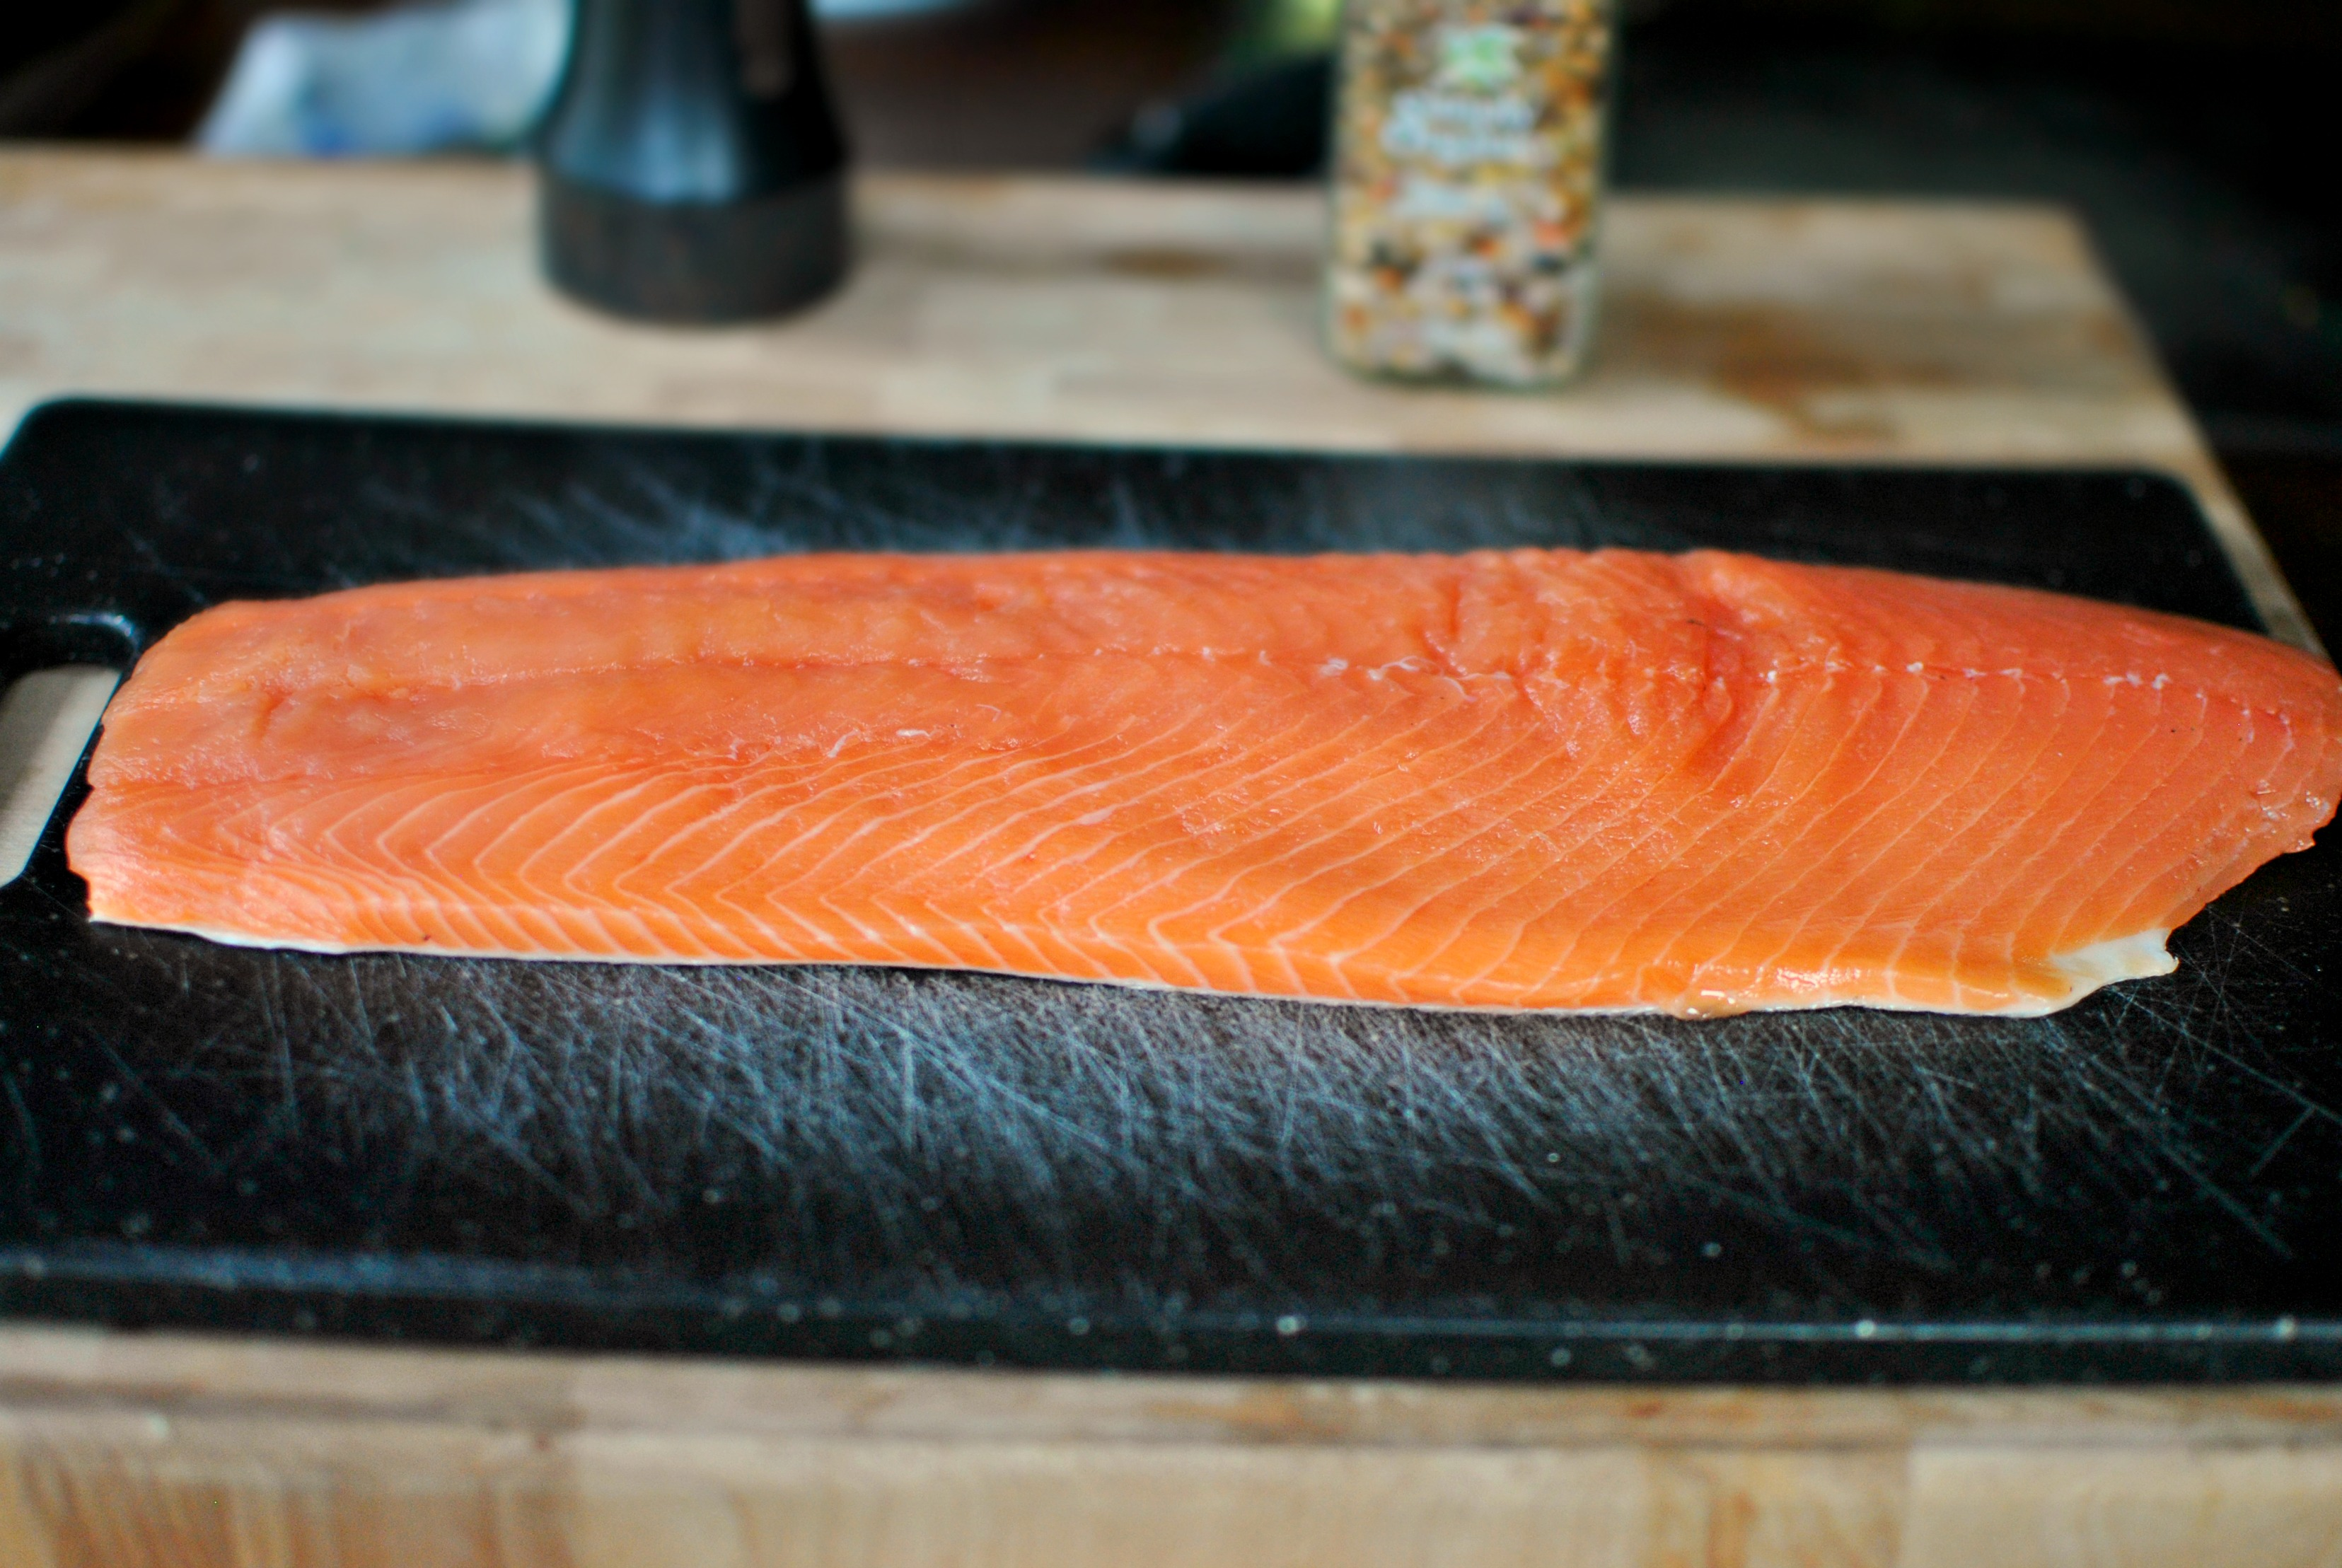 Lay The Salmon, Skinsidedown On A Cutting Board This Salmon Fillet Is  About A Pound And A Half